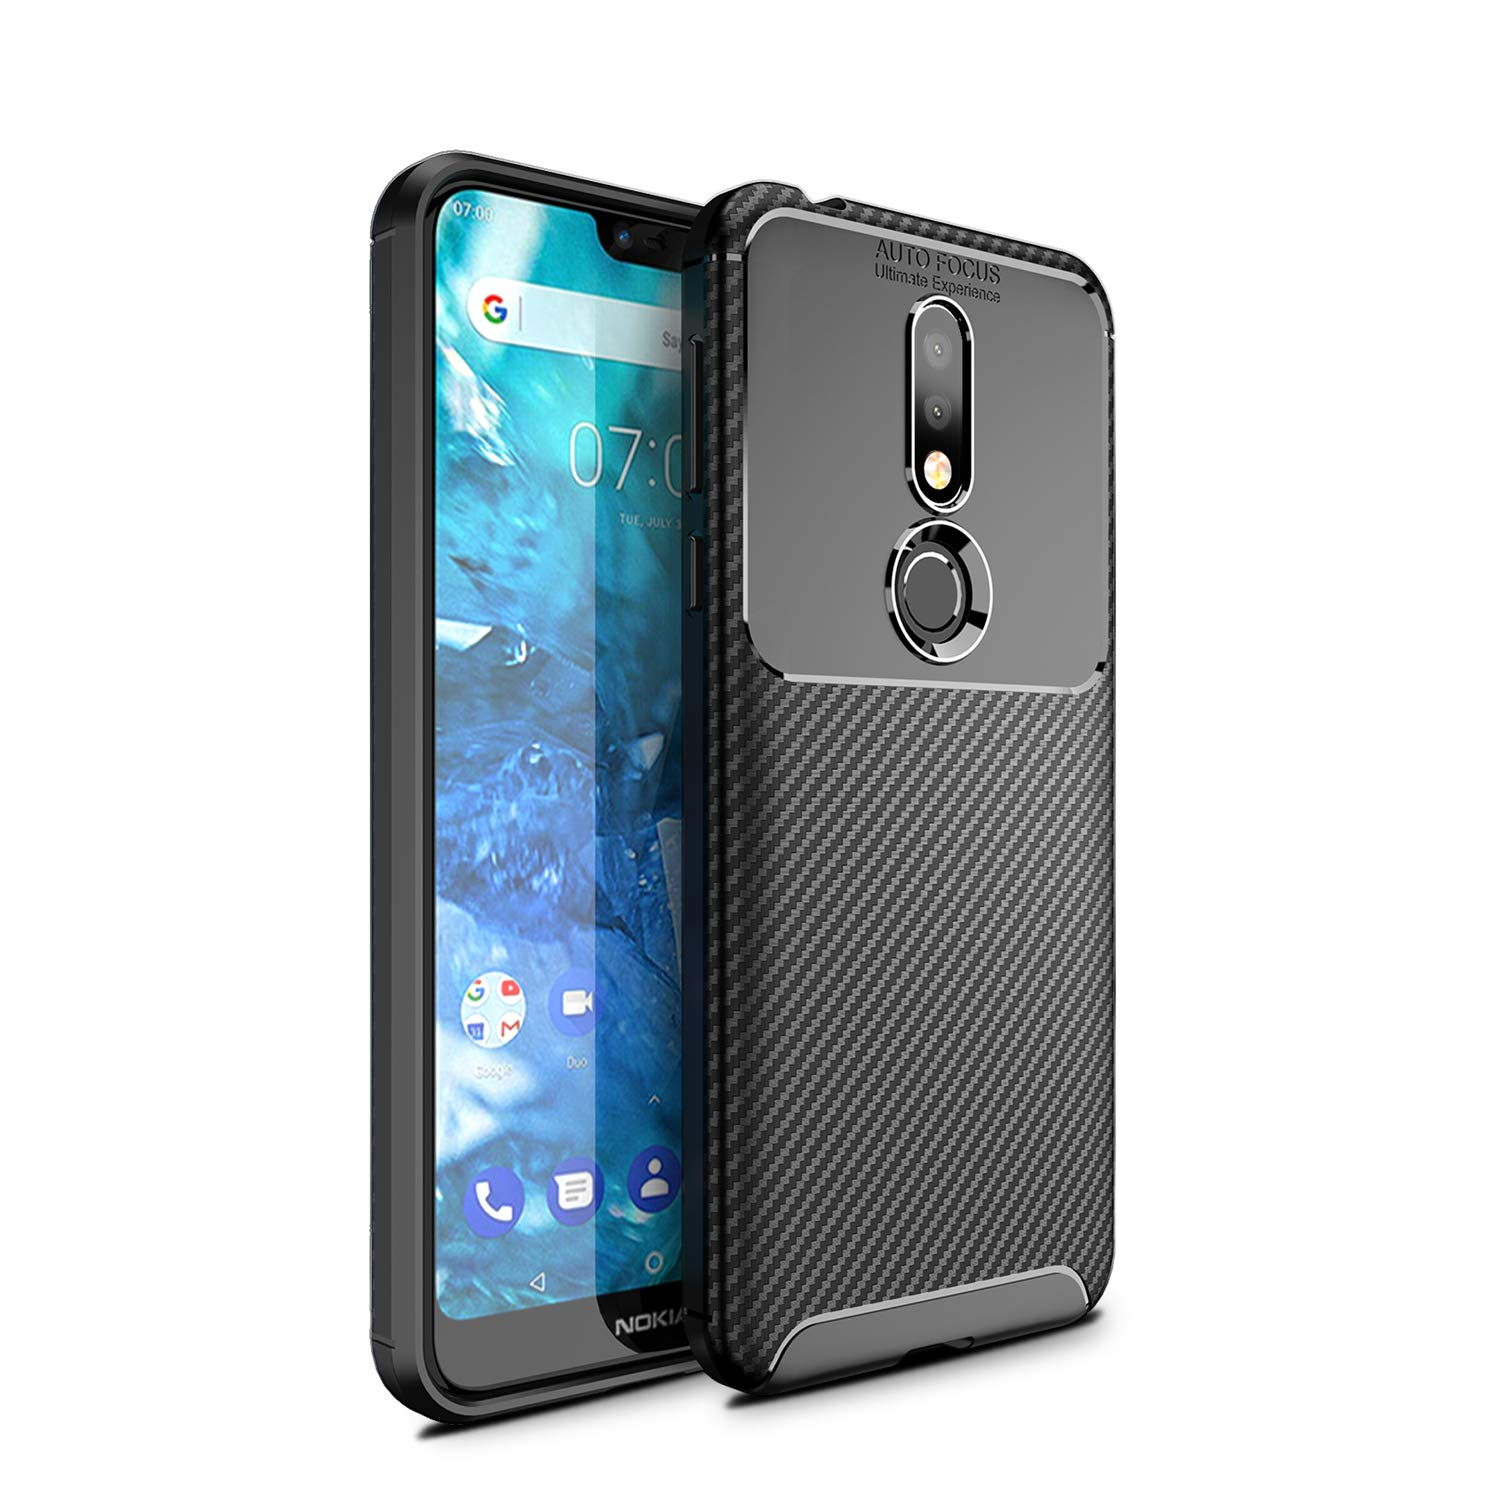 Olixar for Nokia 7.1 Carbon Fiber Case - Slim Cover TPU Non-Slip - Thin Protective Cover - Shockproof Bumper Drop Protection - Wireless Charging Compatible - Black